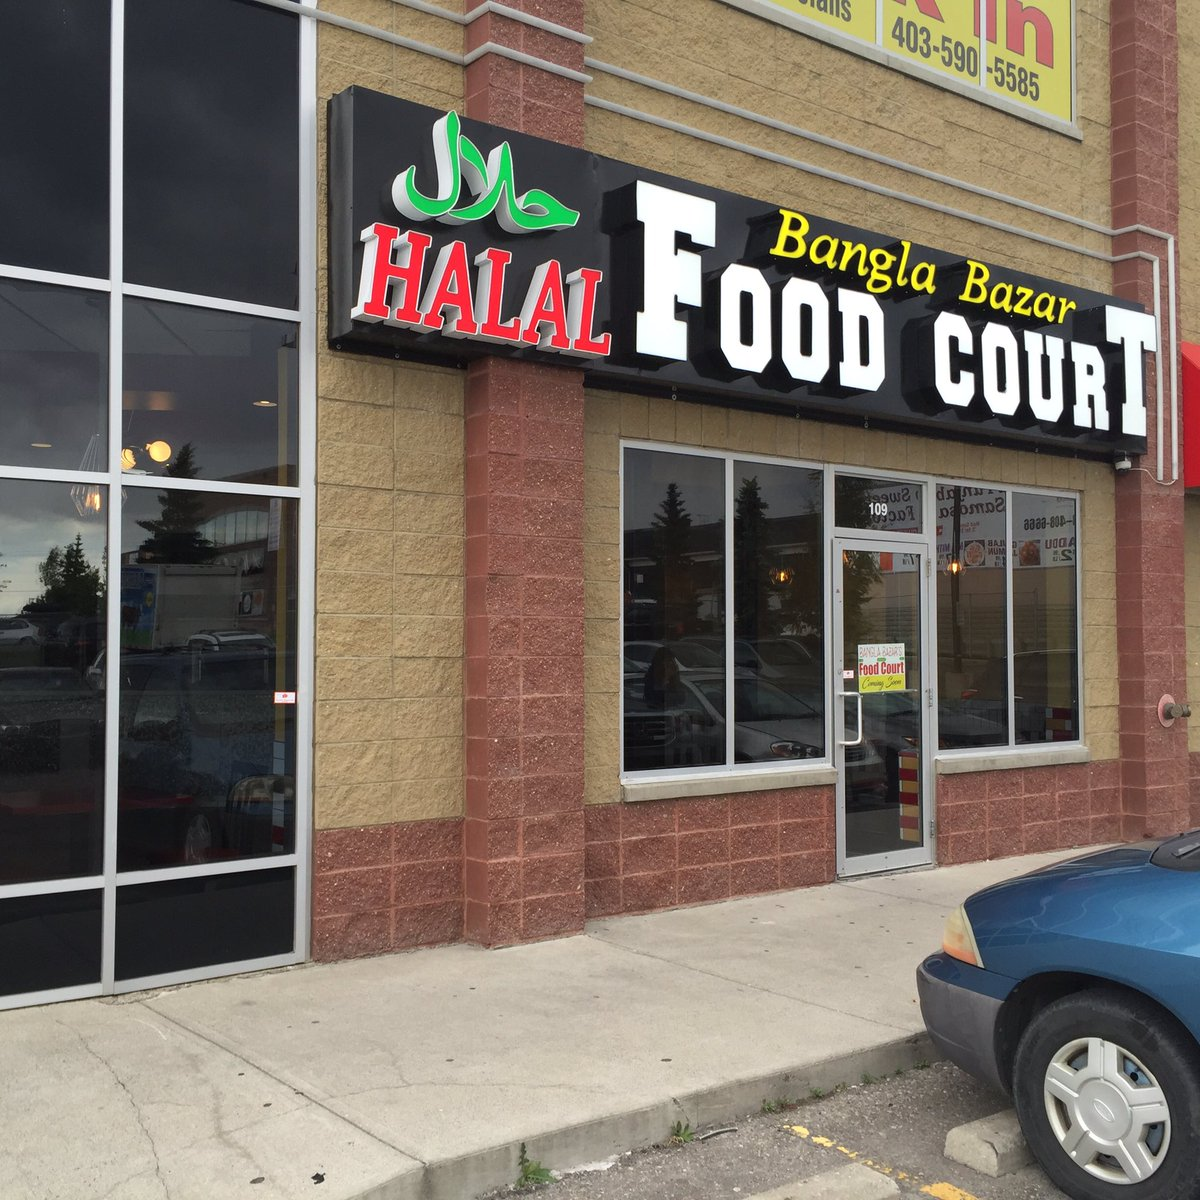 Calgary Halal Cowboy On Twitter New To Me Bangla Bazaar Is Going To Be Opening A Food Court Soon Updates To Follow For The Newest Halal Restaurant In Yyc Https T Co P3ko9zn54p